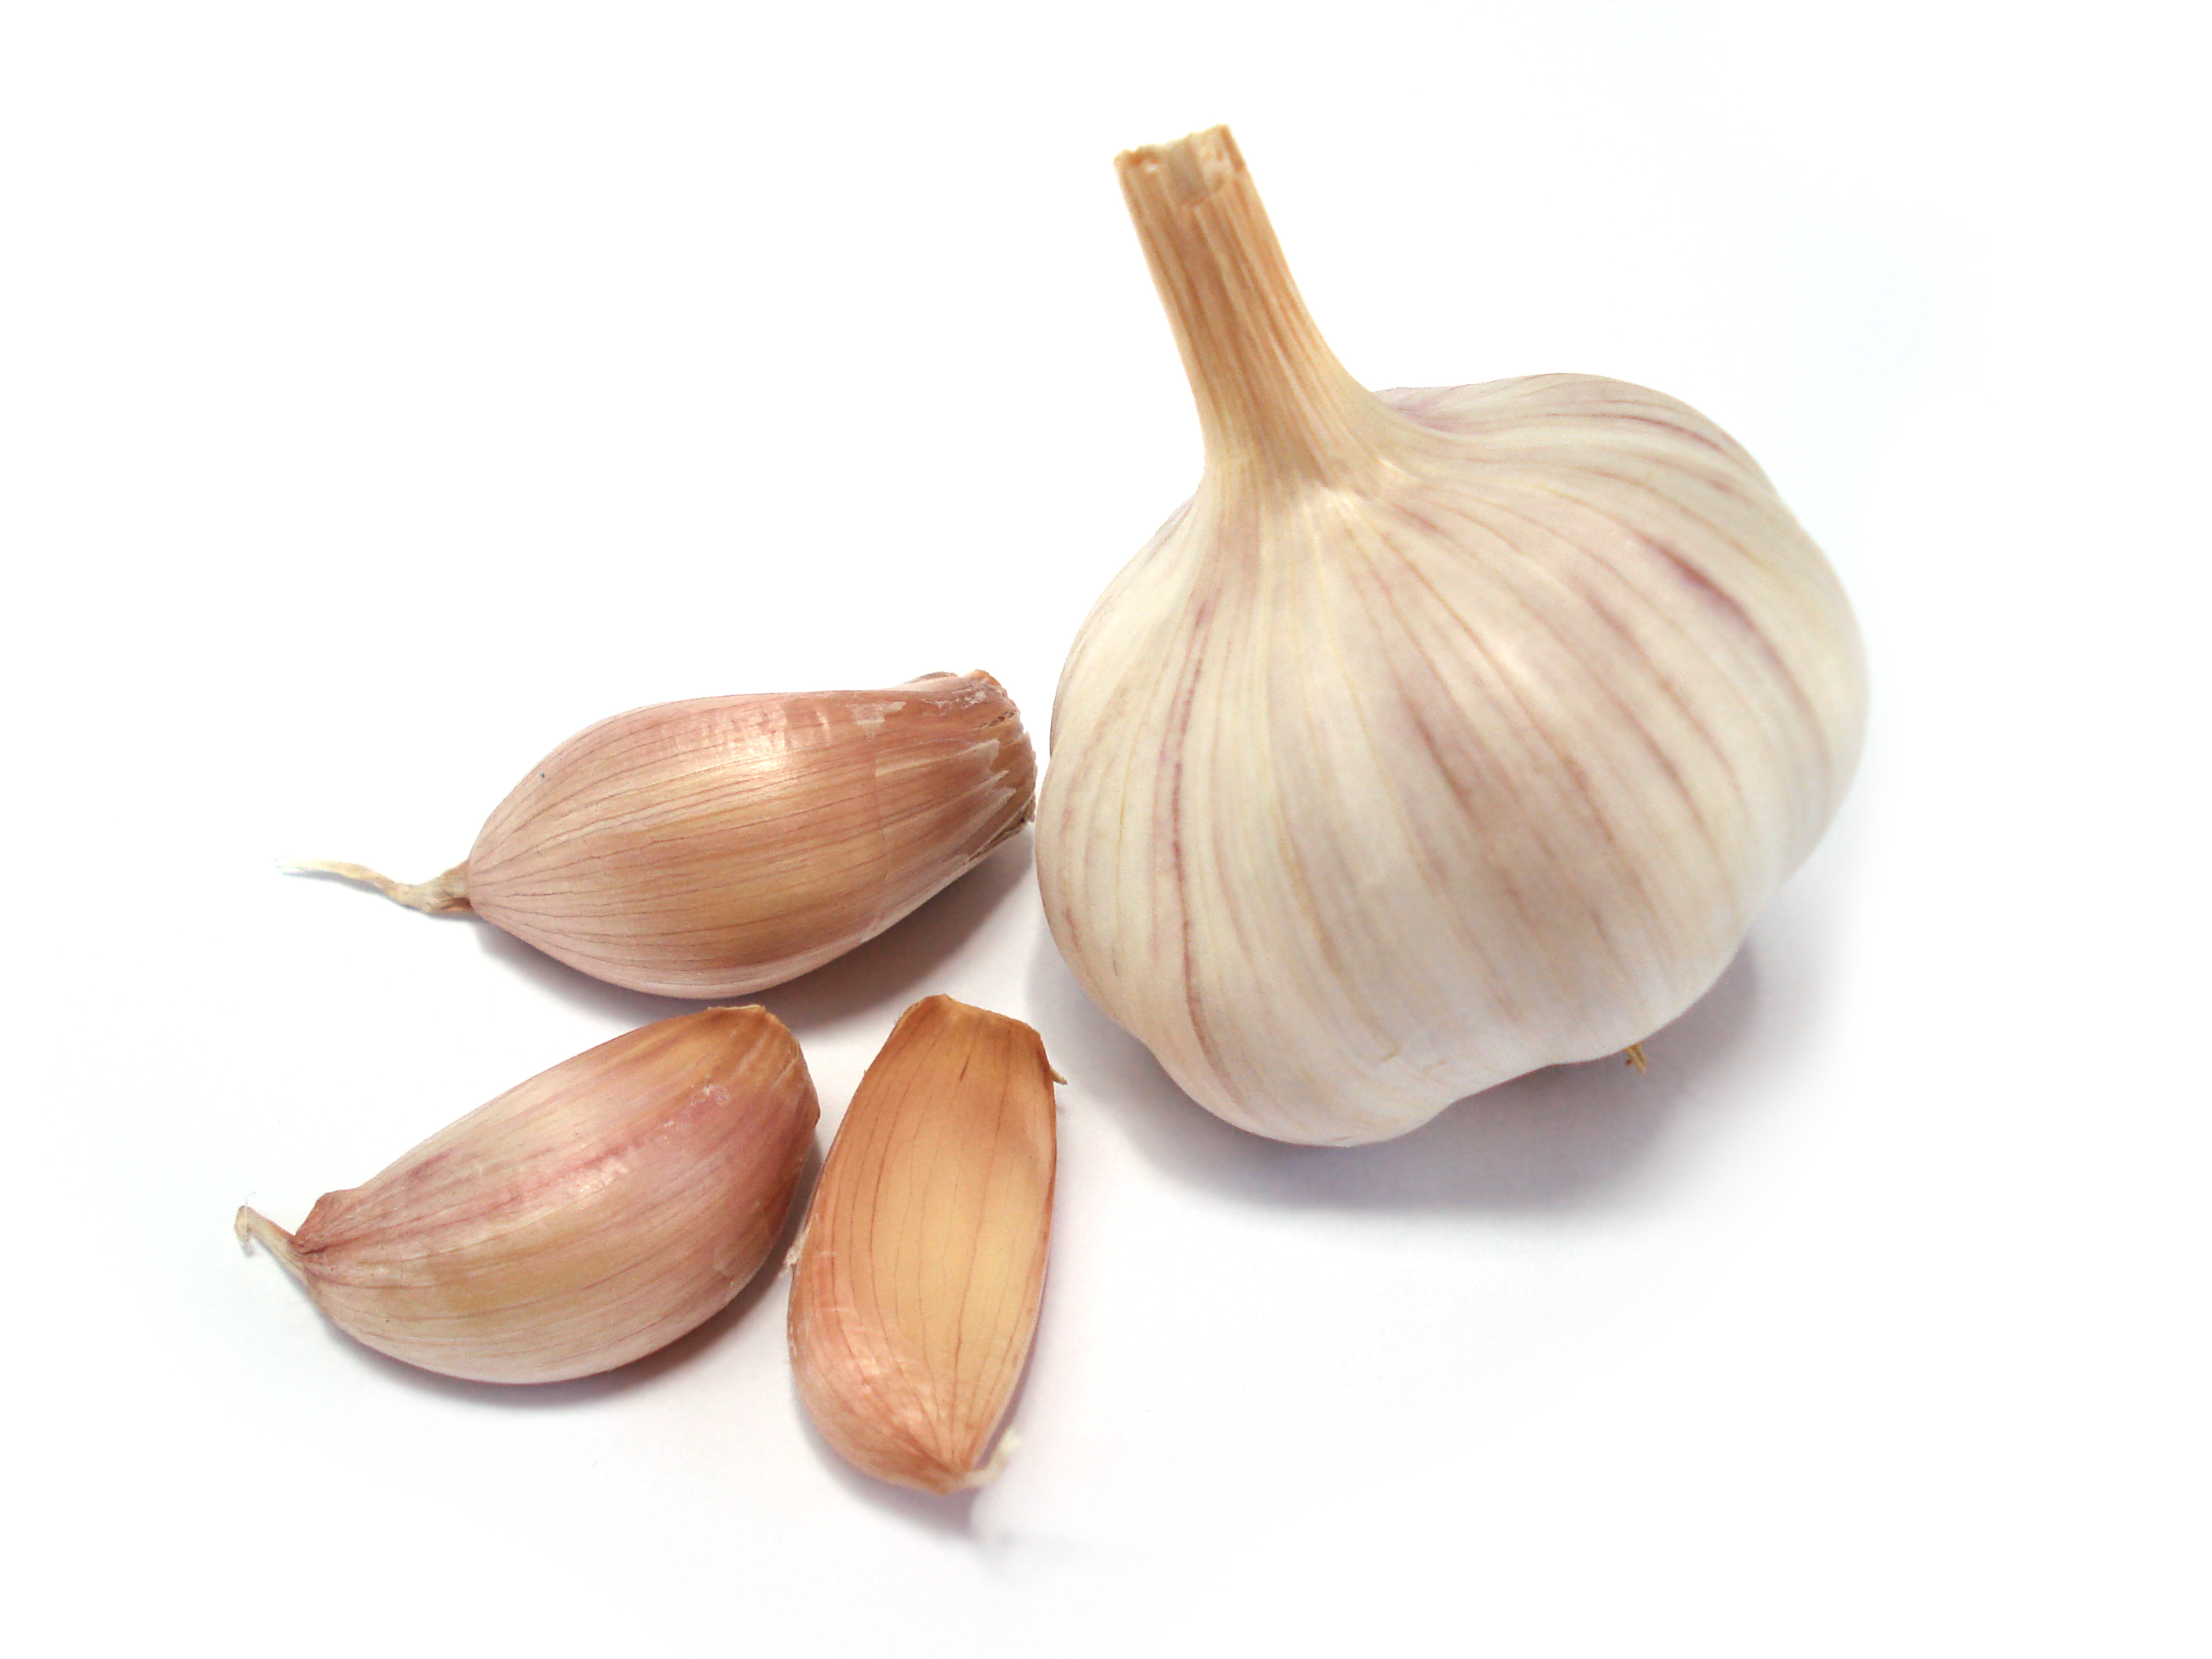 Garlic - 08 photo